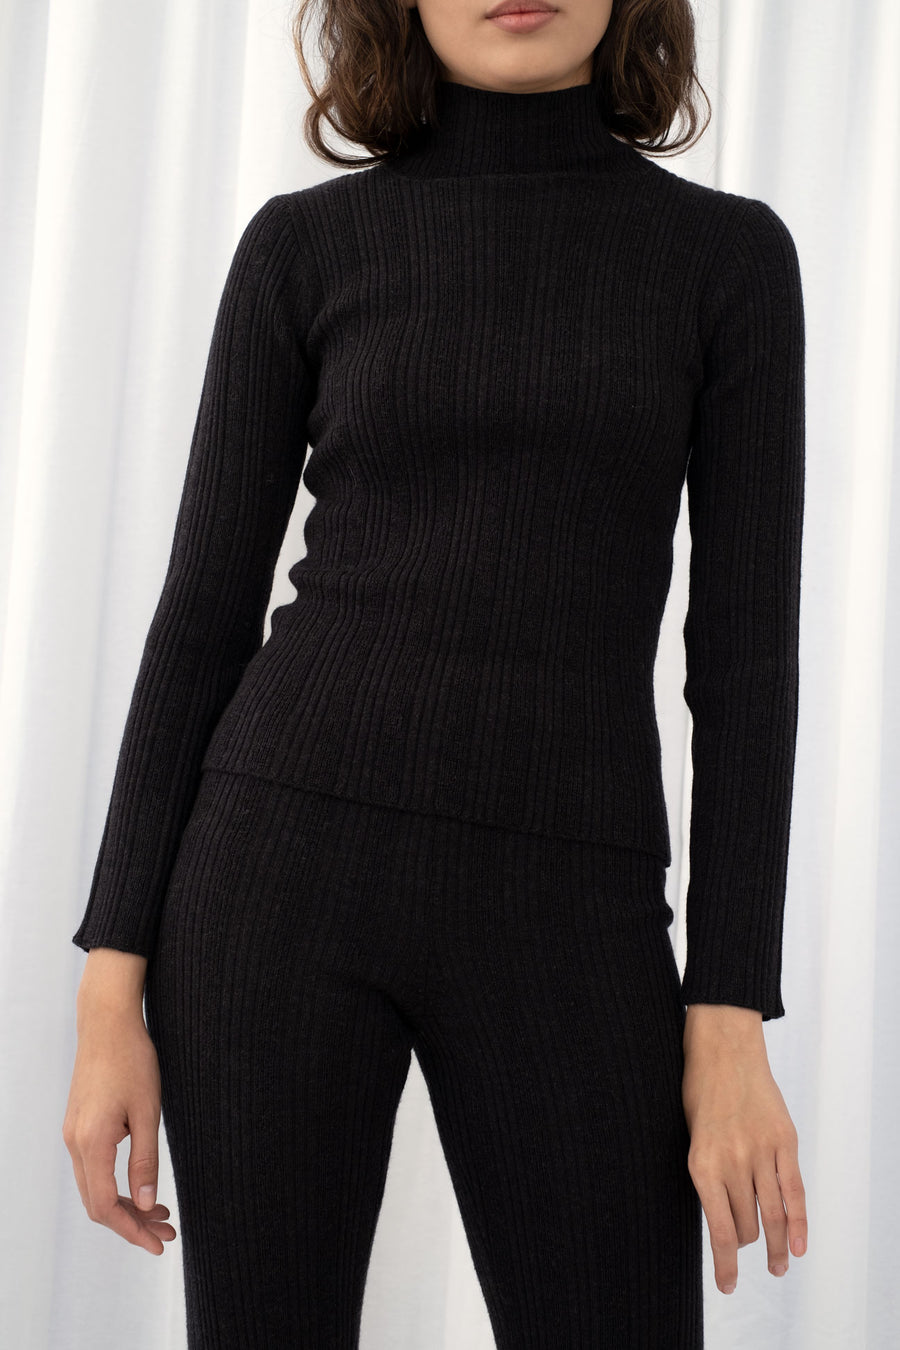 Melange Black Rib Turtleneck